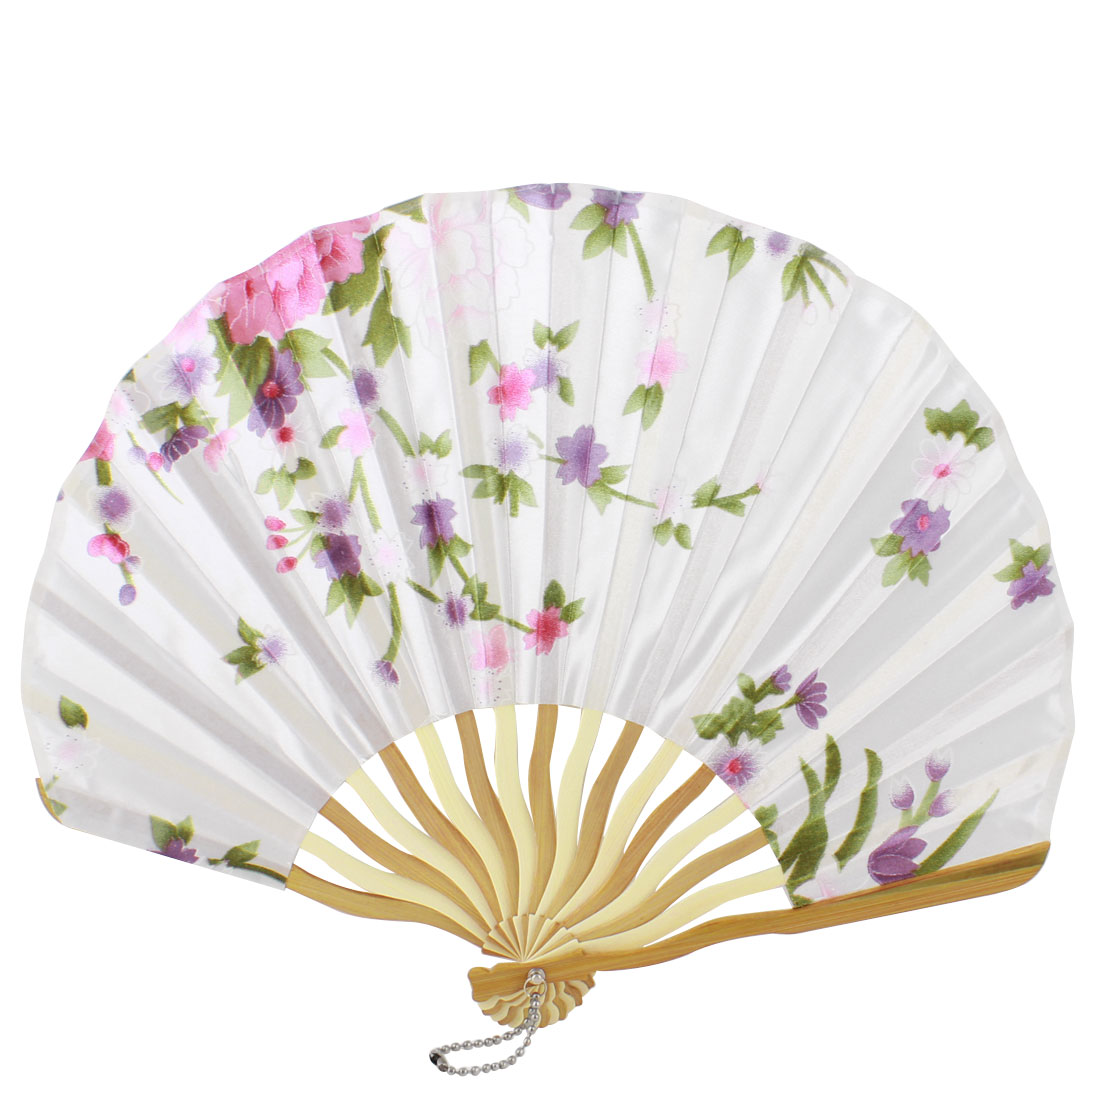 Beige Bamboo Ribs Flower Printed Seashell Shape Folding Hand Fan White